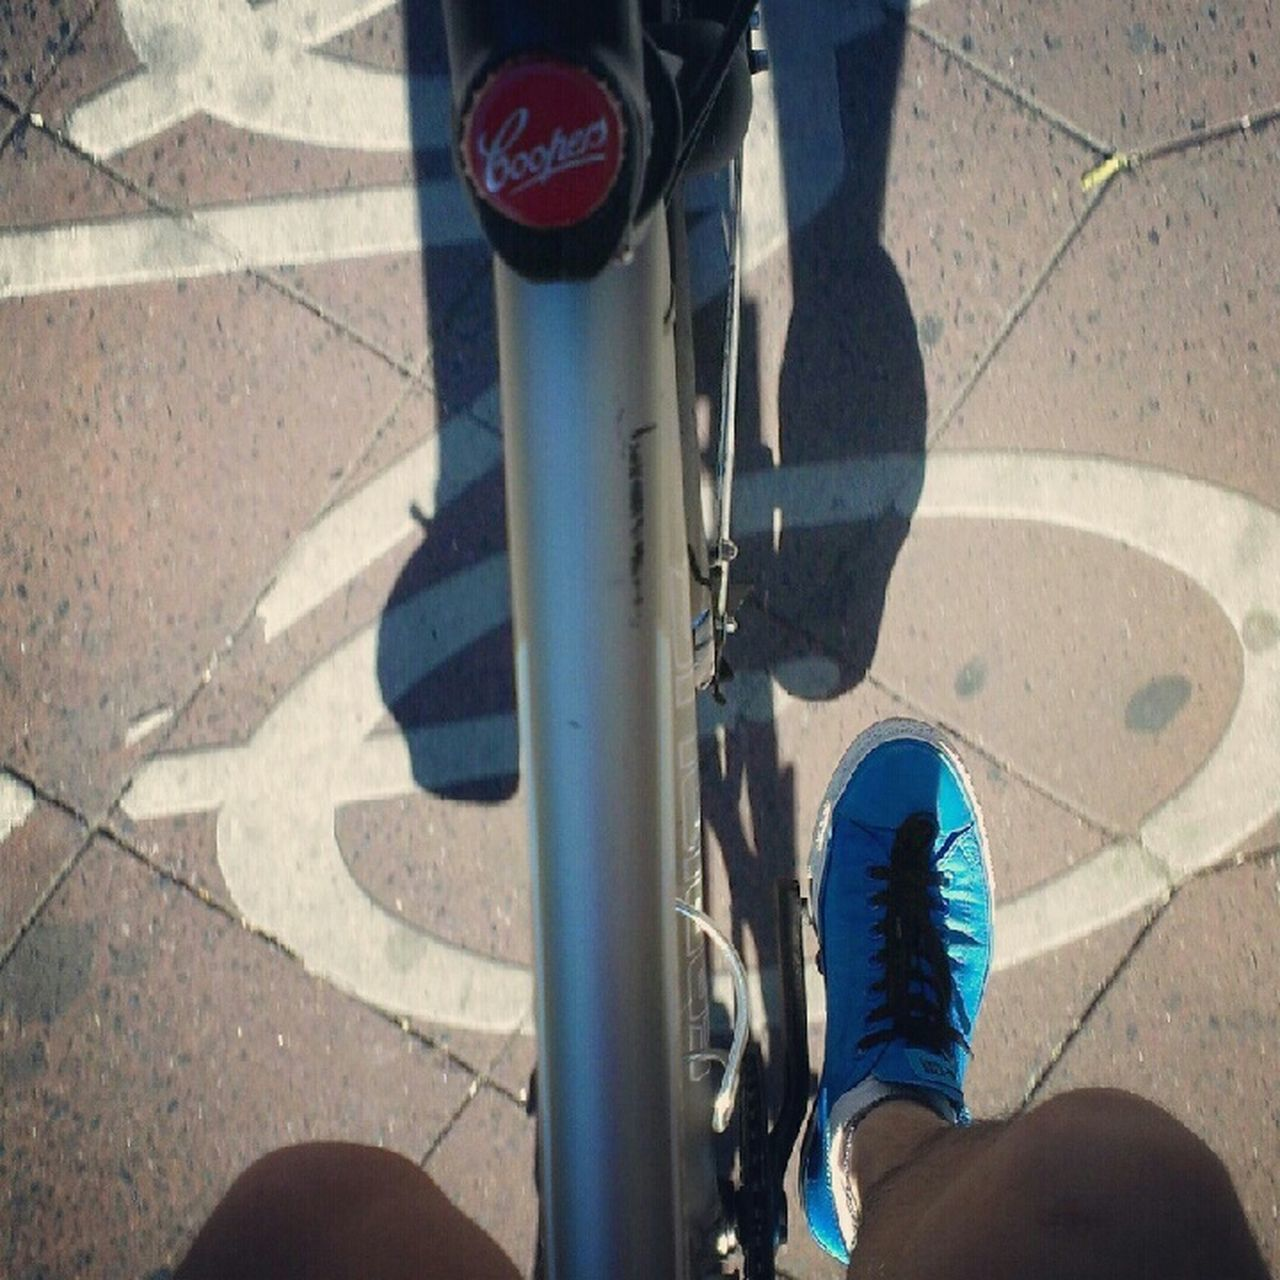 Pedalling